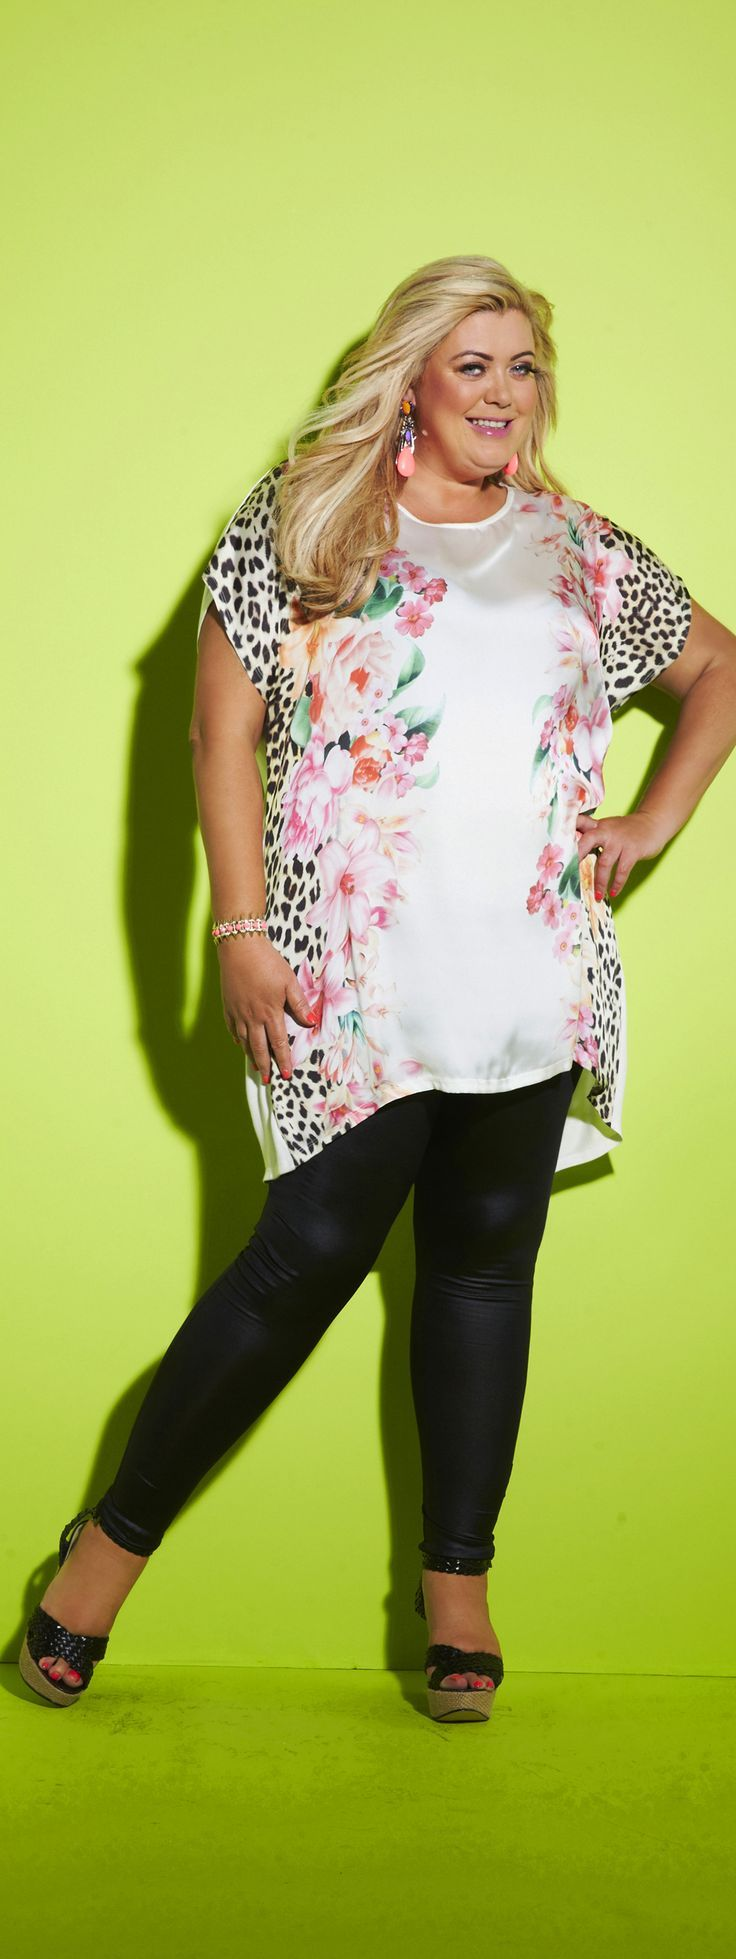 plus size women over 50 15